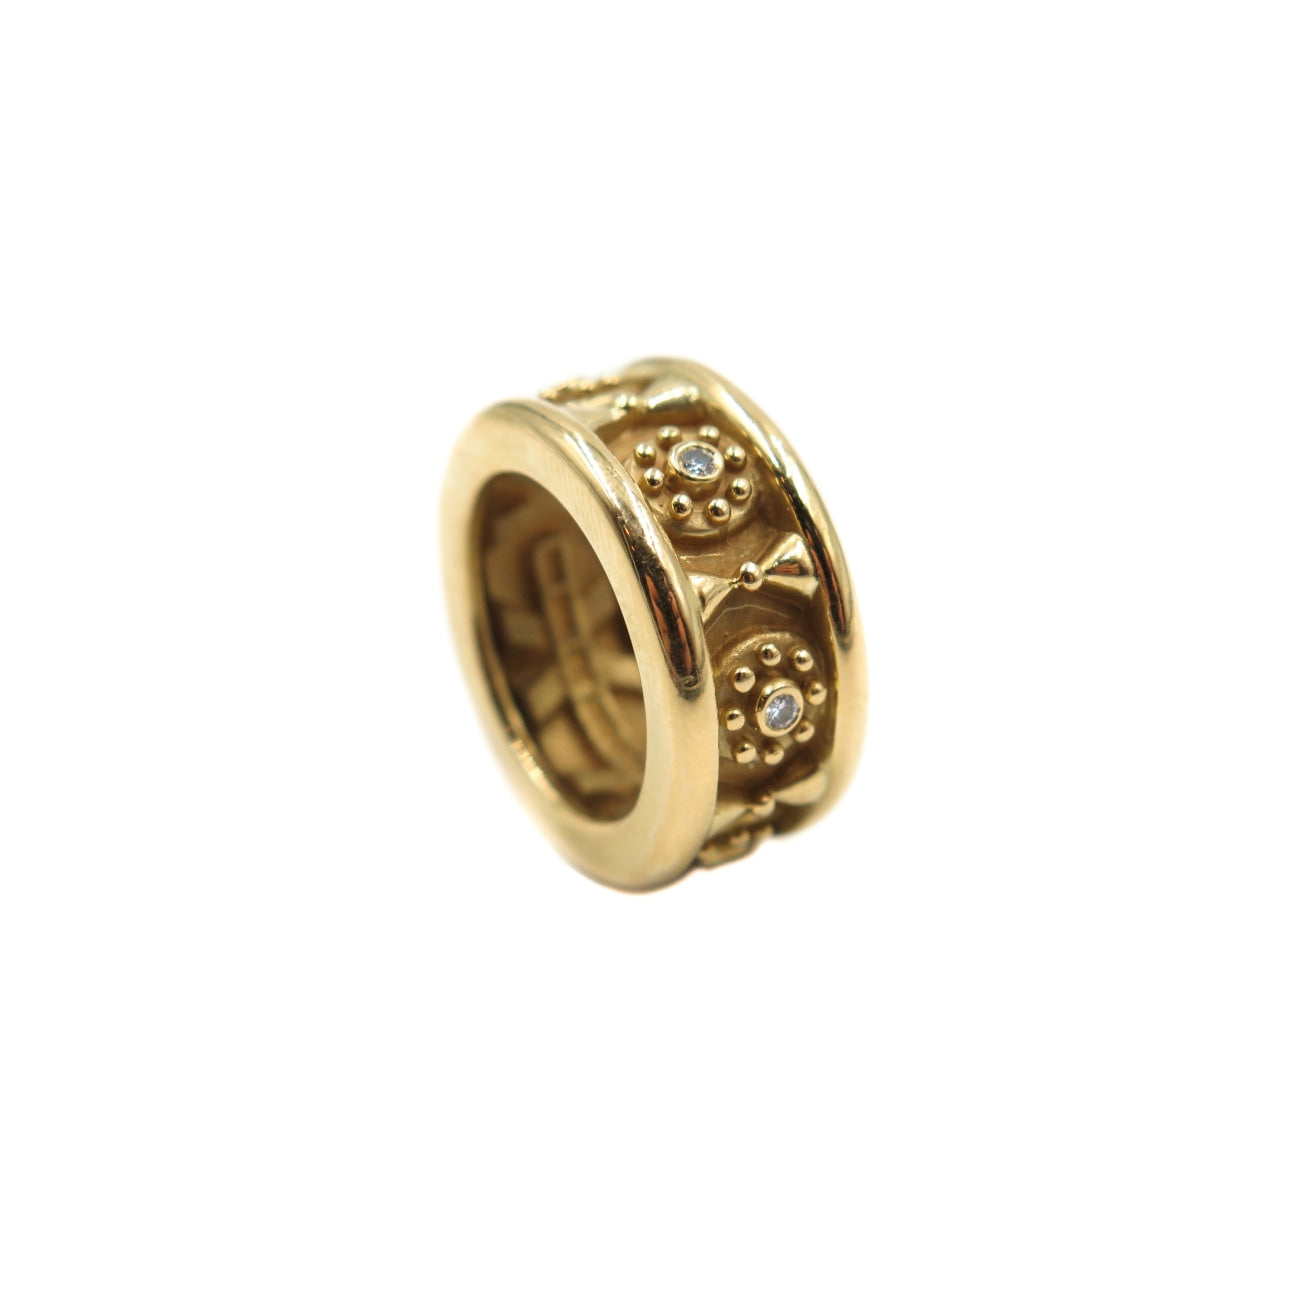 Estate Jewelry Estate Jewelry - Kieselstein Cord Flower Designed Yellow Gold Band by B. Kieselstein Cord | Manfredi Jewels